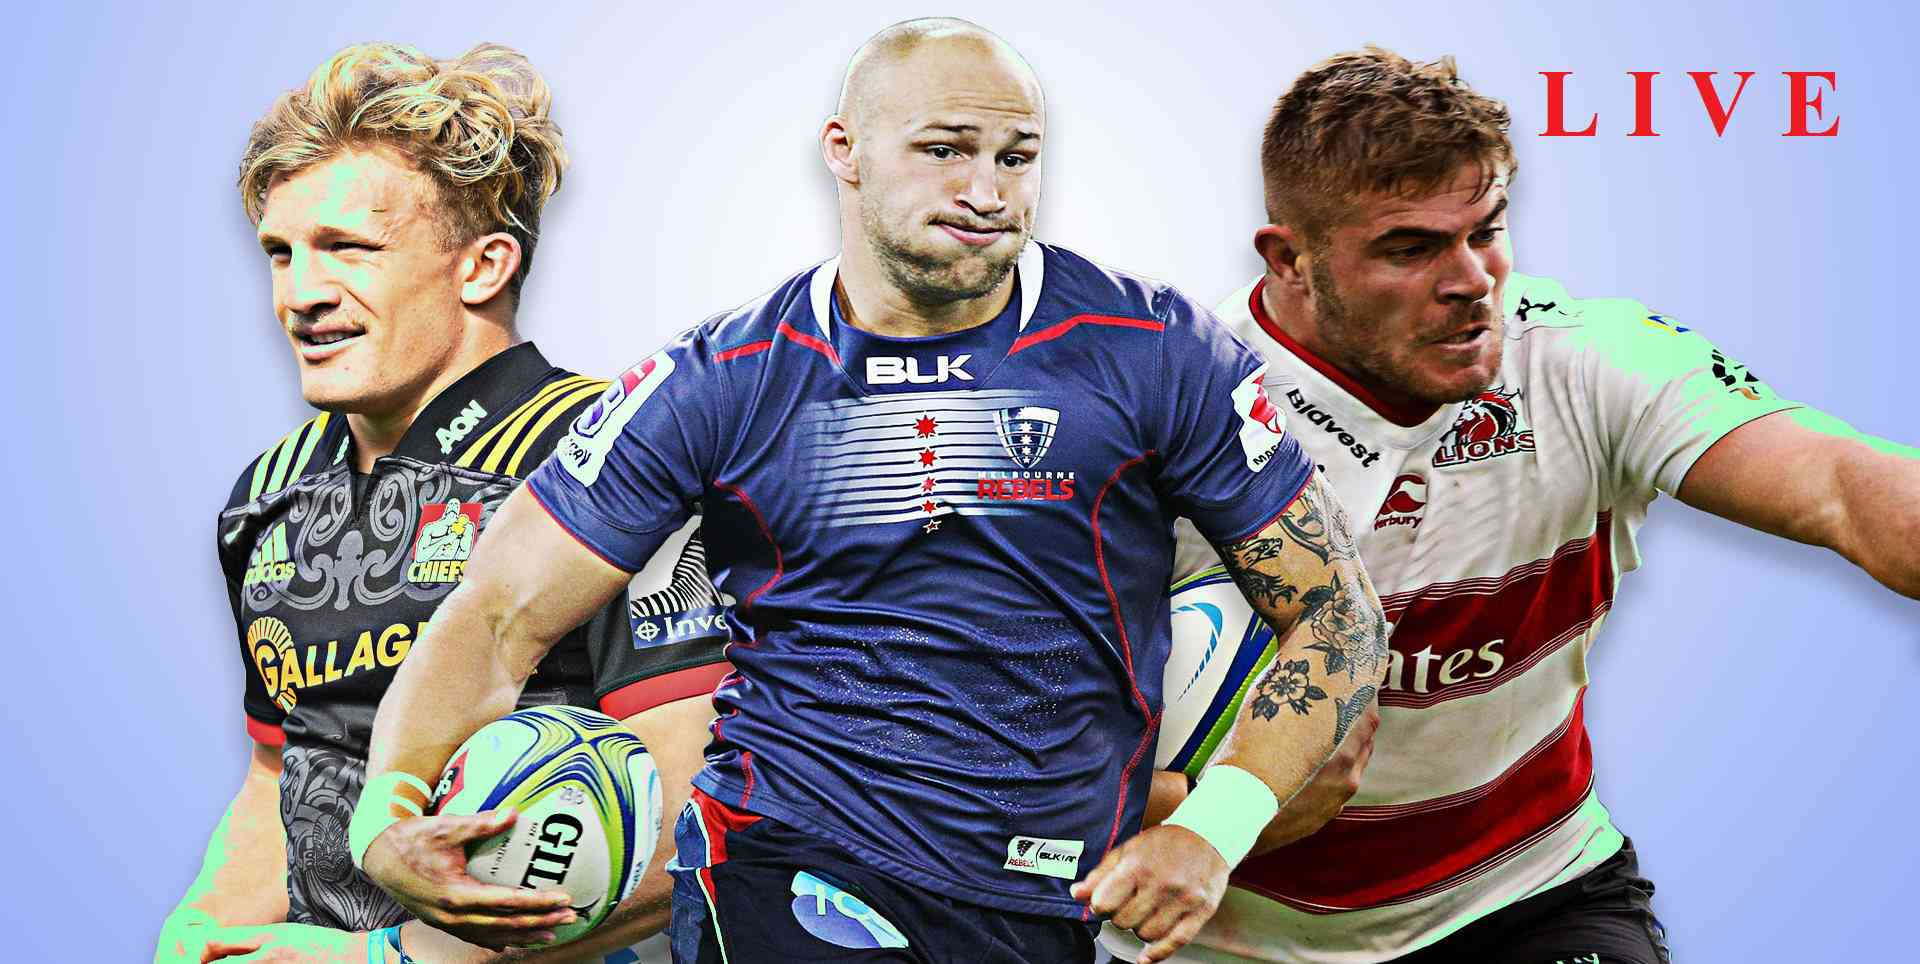 northampton-saints-vs-montpellier-herault-live-telecast